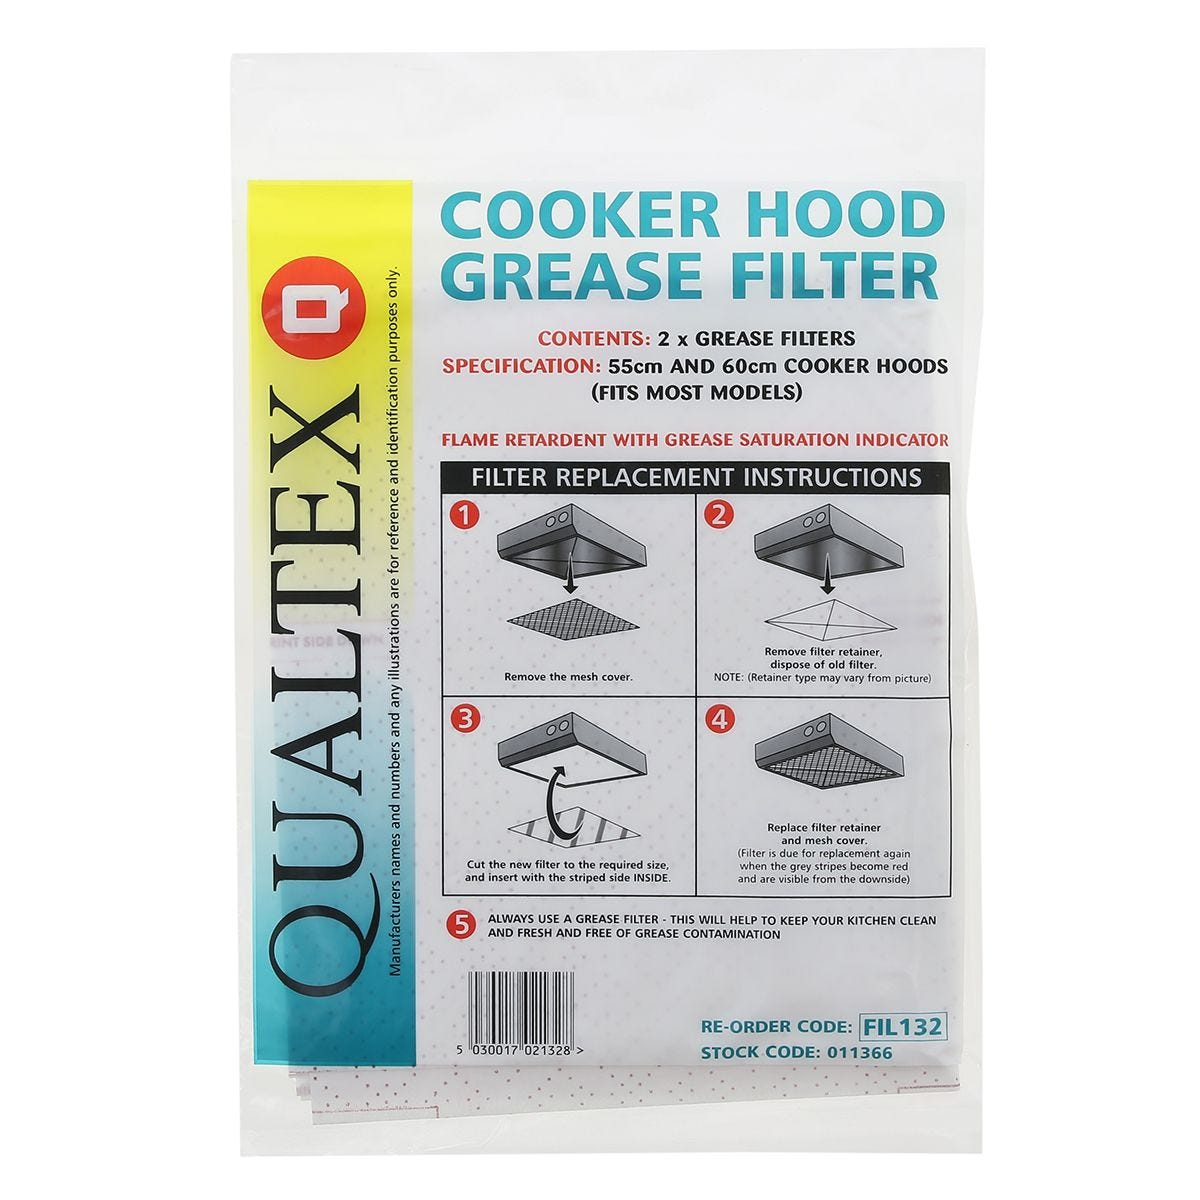 Qualtex Cooker Hood Red Line Grease Filters 50x 60cm - Pack of 2